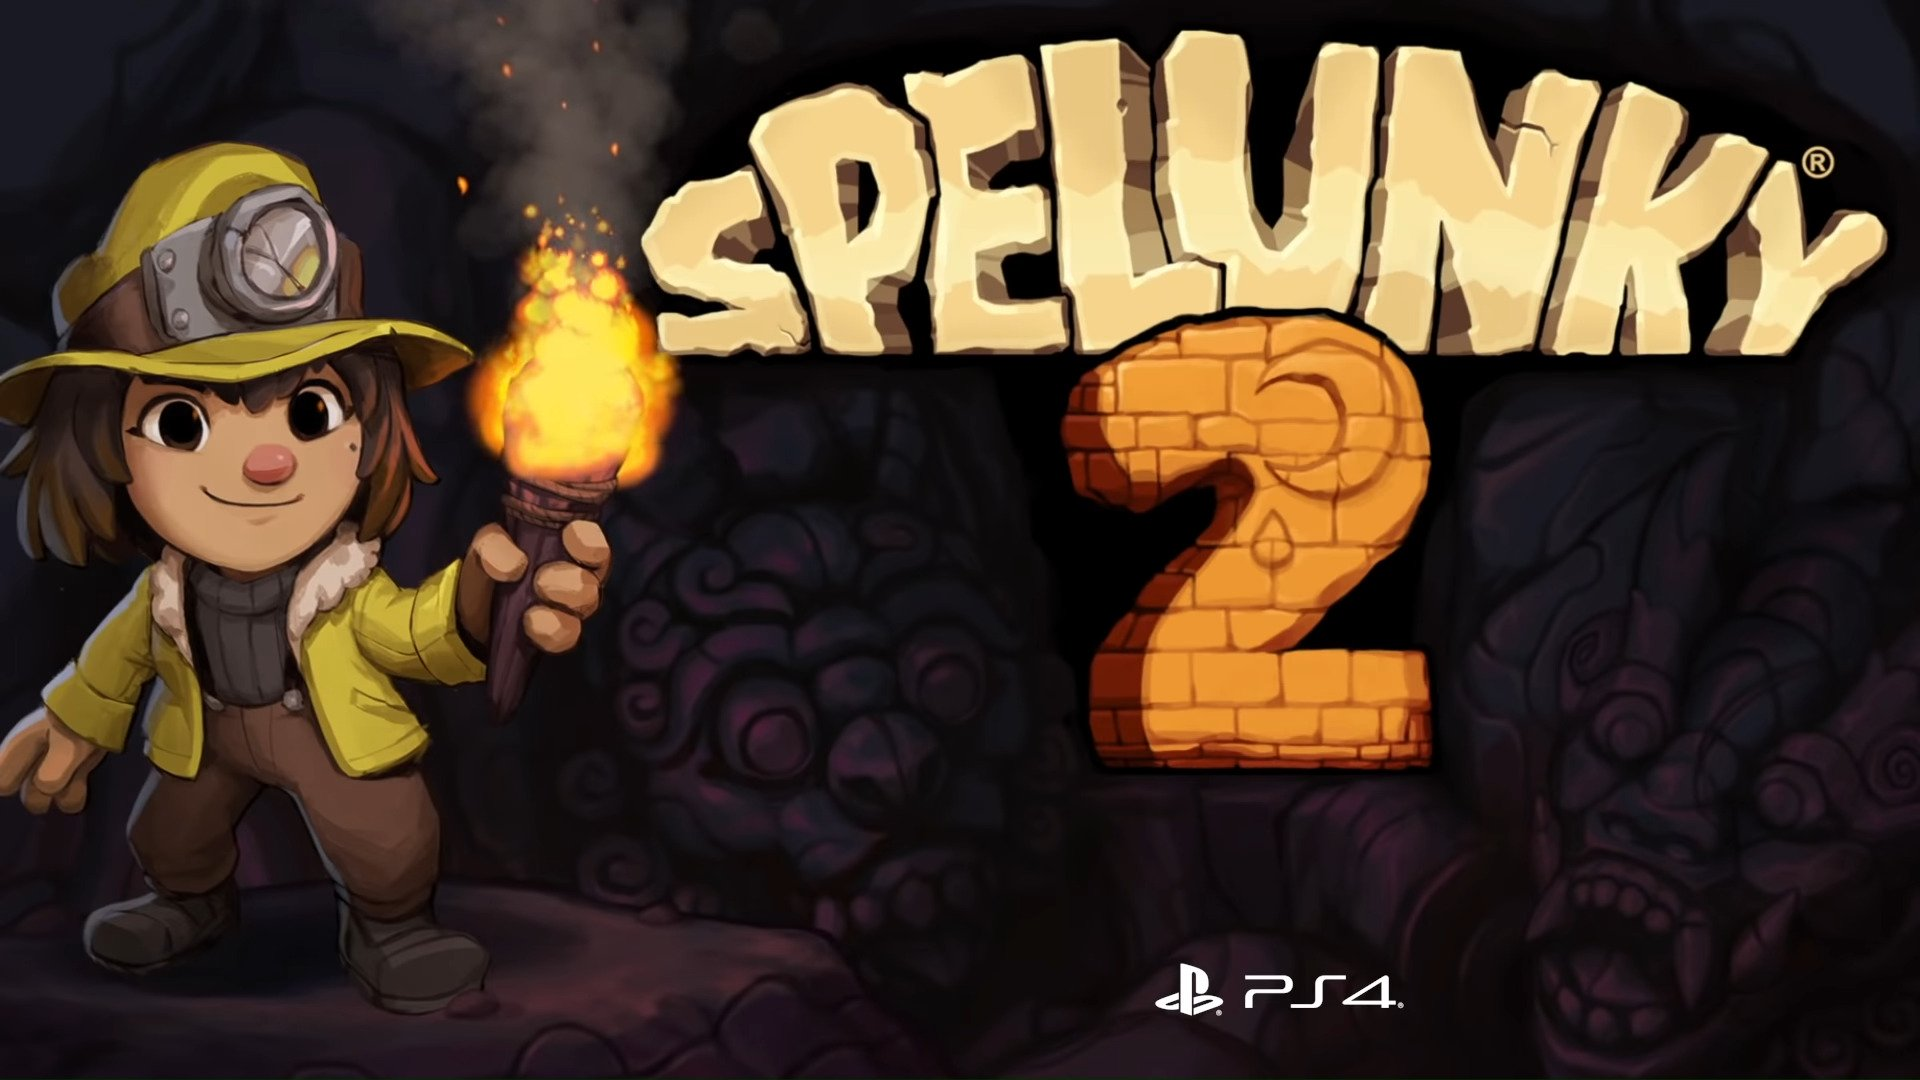 Spelunky 2, The Sequel To The Highly Acclaimed Roguelike Platforming Game, Is Out Today On PS4